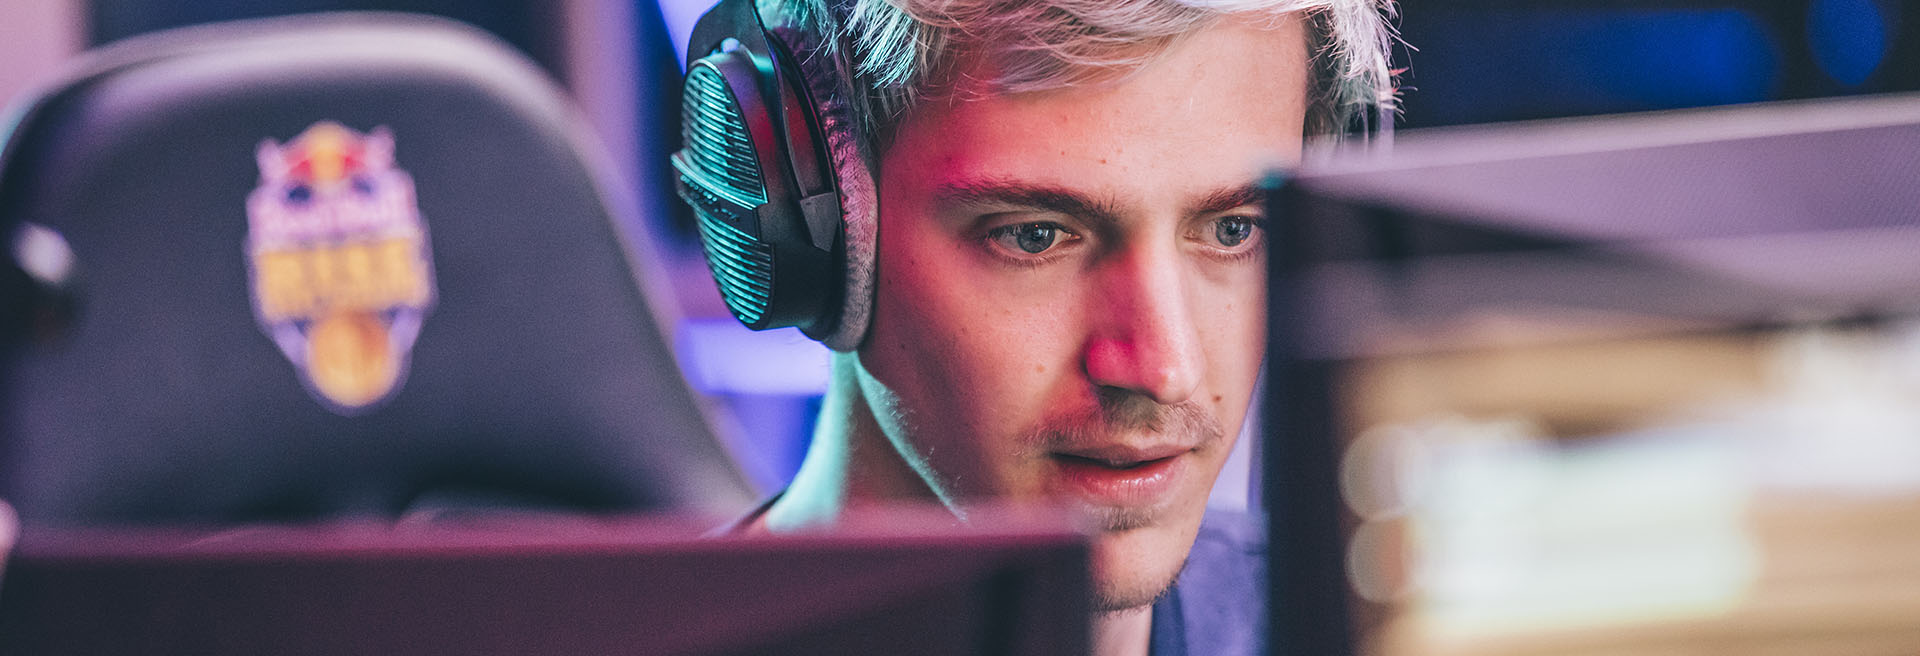 <h1>PLAYLIST: Beyond Midnight - A Gamers World.</h1> <h2>Curious what track Ninja uses in-stream? Get it (and more) for your content now.</h2> <a href=&quot;https://www.redbullsoundsupply.com/tiny/KEgyC&quot; title=&quot;Browse our music catalog now&quot; class=&quot;btn btn--red&quot;>Discover the Playlist</a>